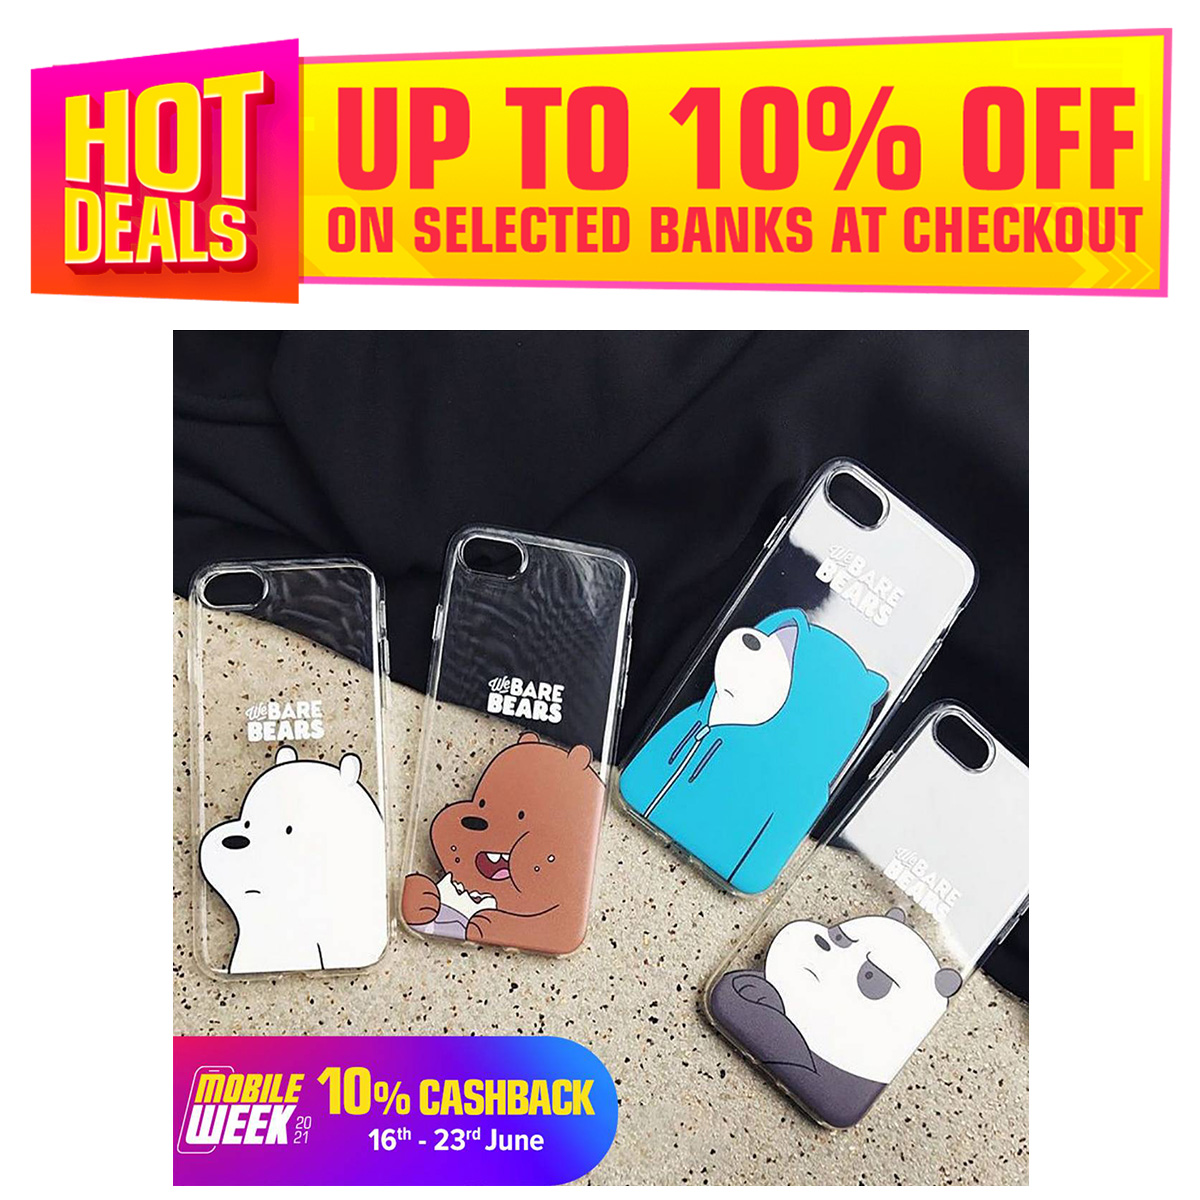 Bare Bears Tags Stickers, Printed Transparent Mobile Case, All Models Are Available.